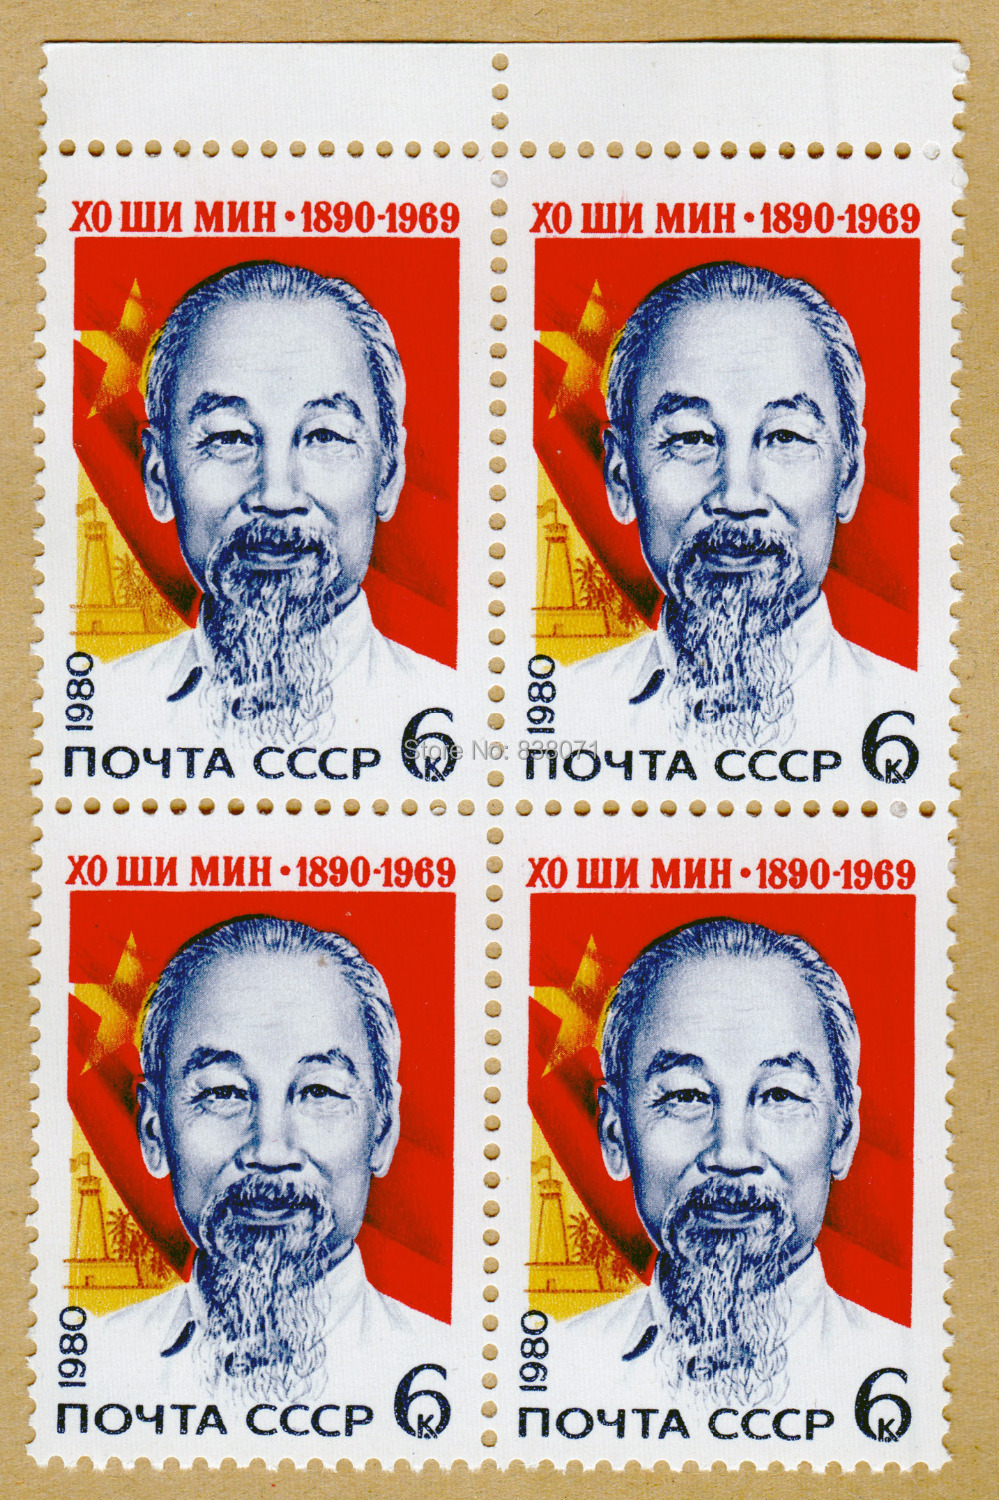 Russia Stamp,1980 The 90th anniversary of the birth of ho chi minh Vietnam leader, Soviet union stamps , 4 pieces joined sheet the counterlife